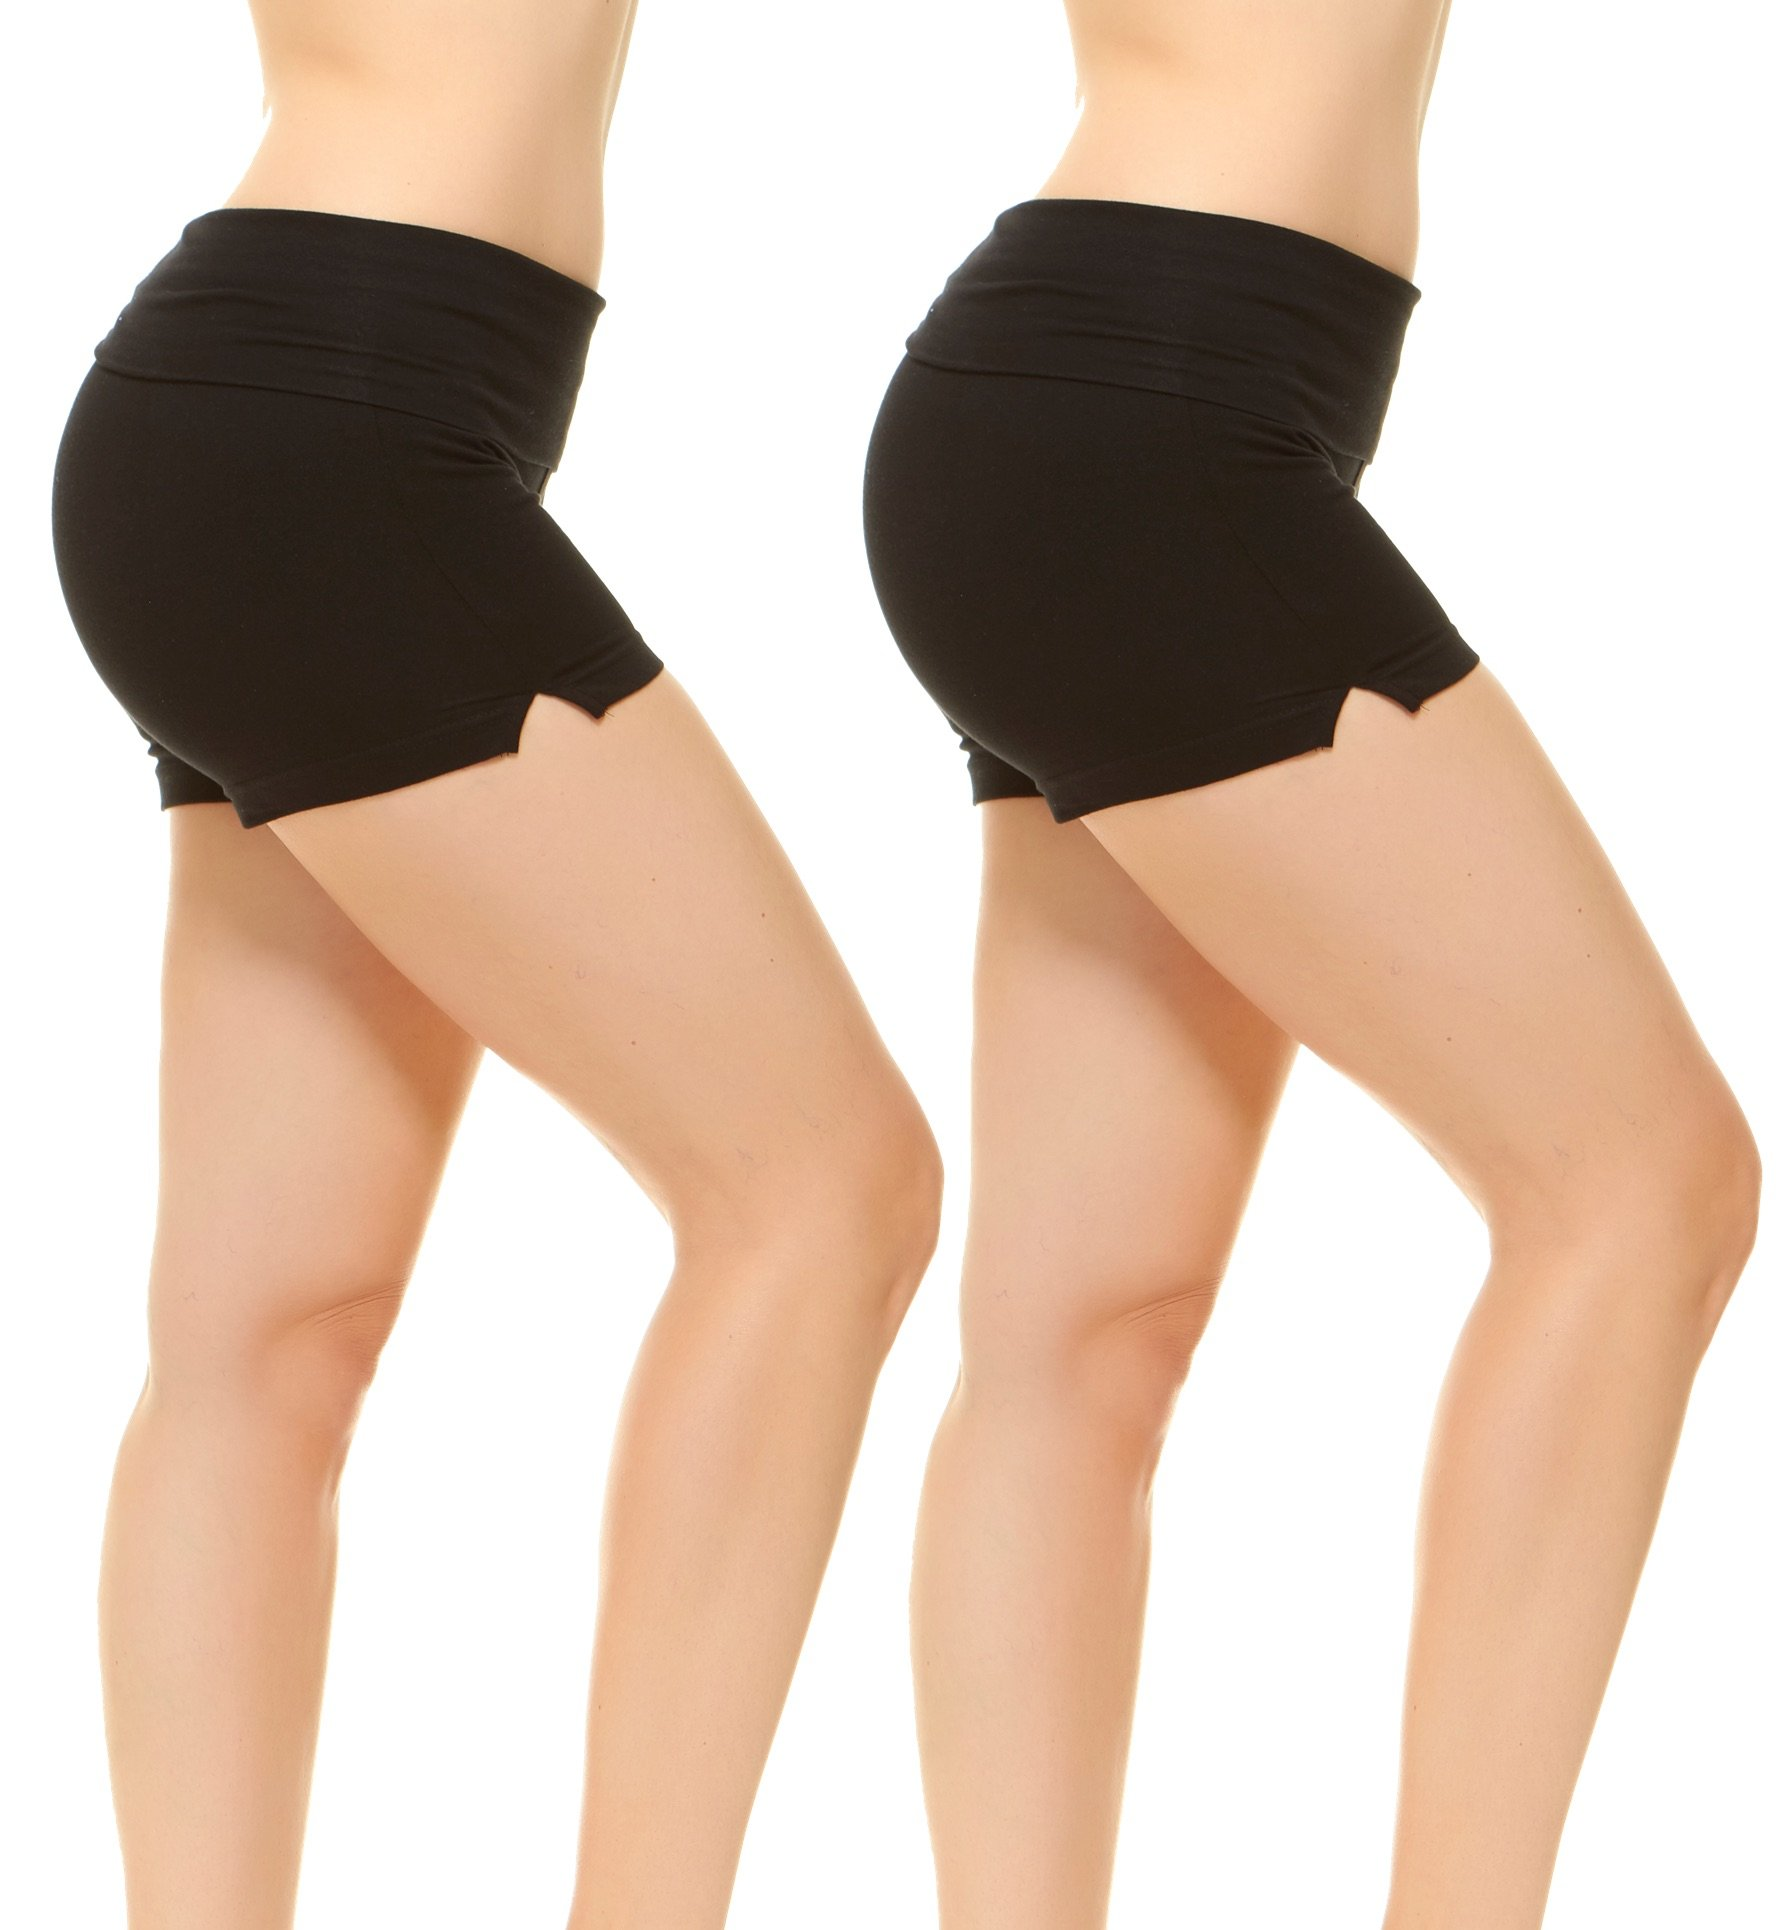 Fold-Over Waistband Stretchy Cotton-Blend Yoga Shorts Small 2Pack Black